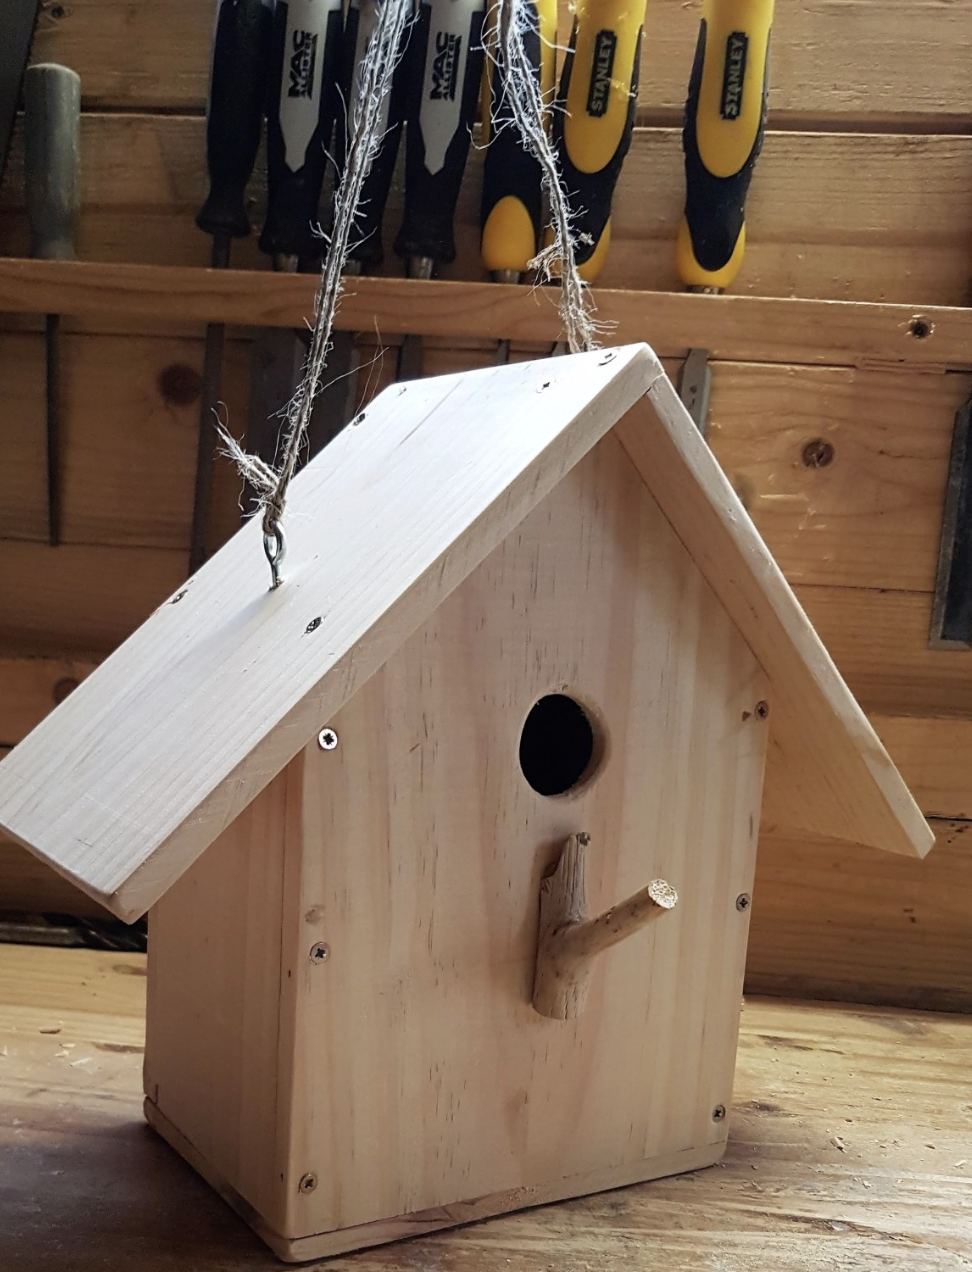 Add string to the bird feeder so you can hang it